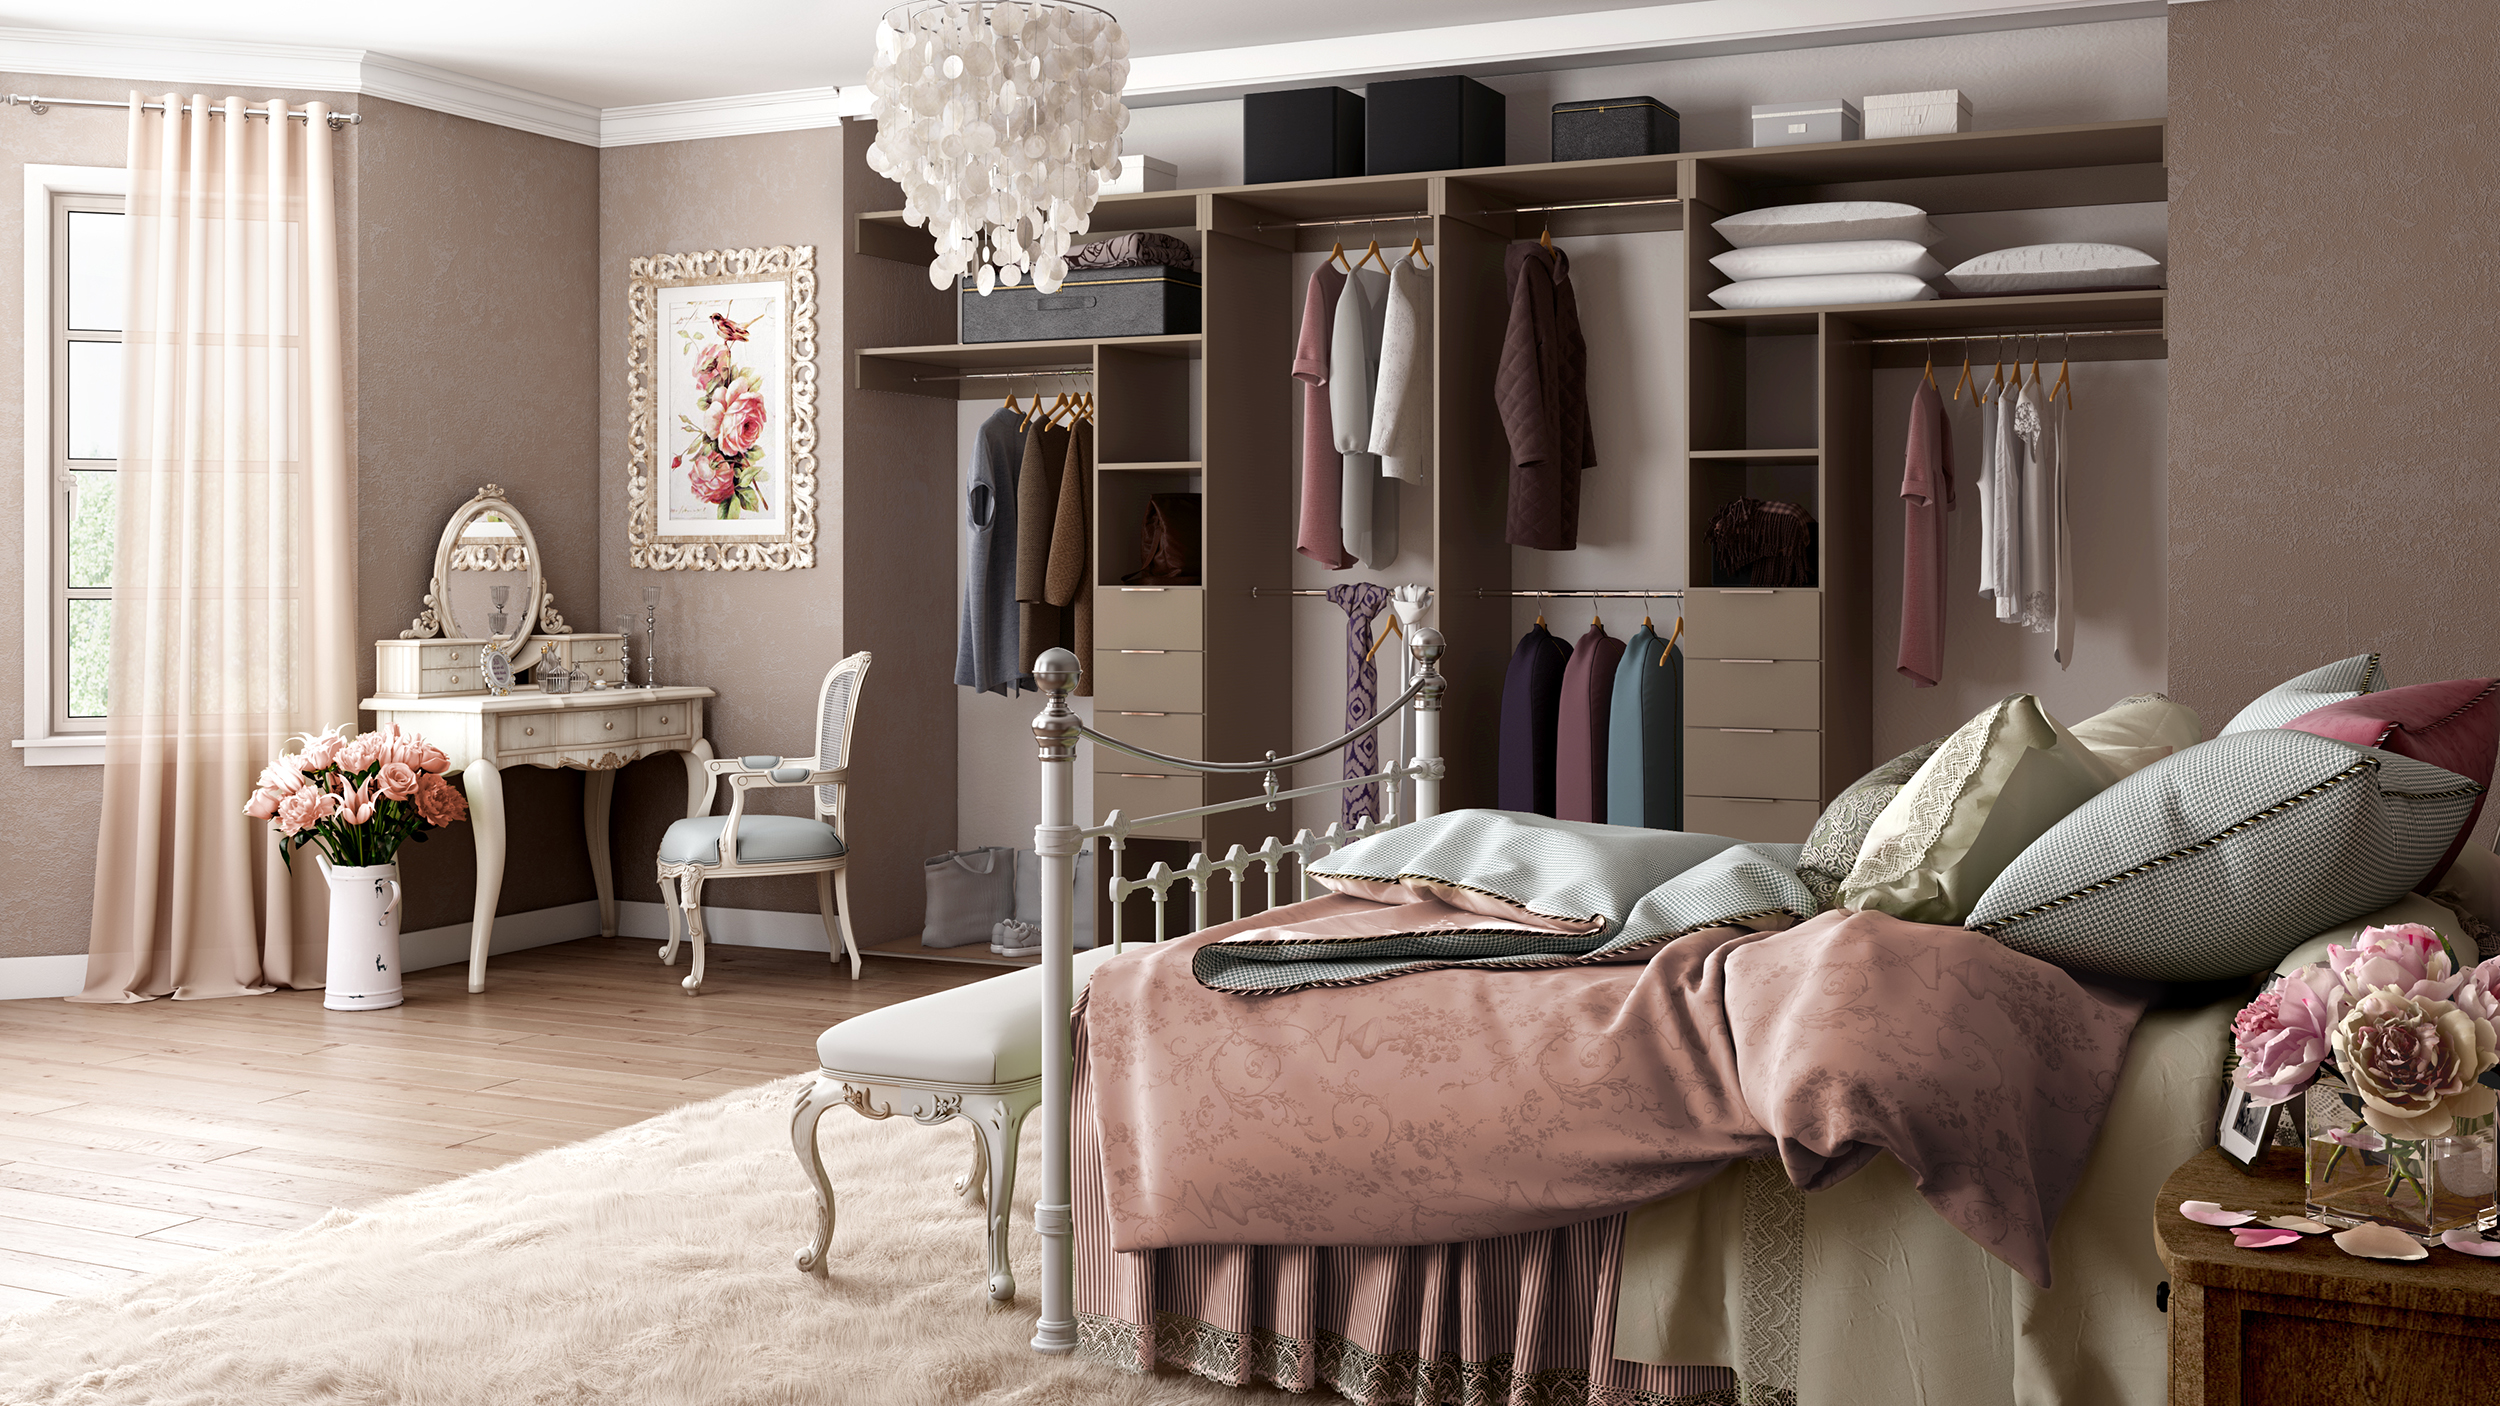 With colour co-ordinating internal storage too, your customers really can have a bedroom of their dreams!